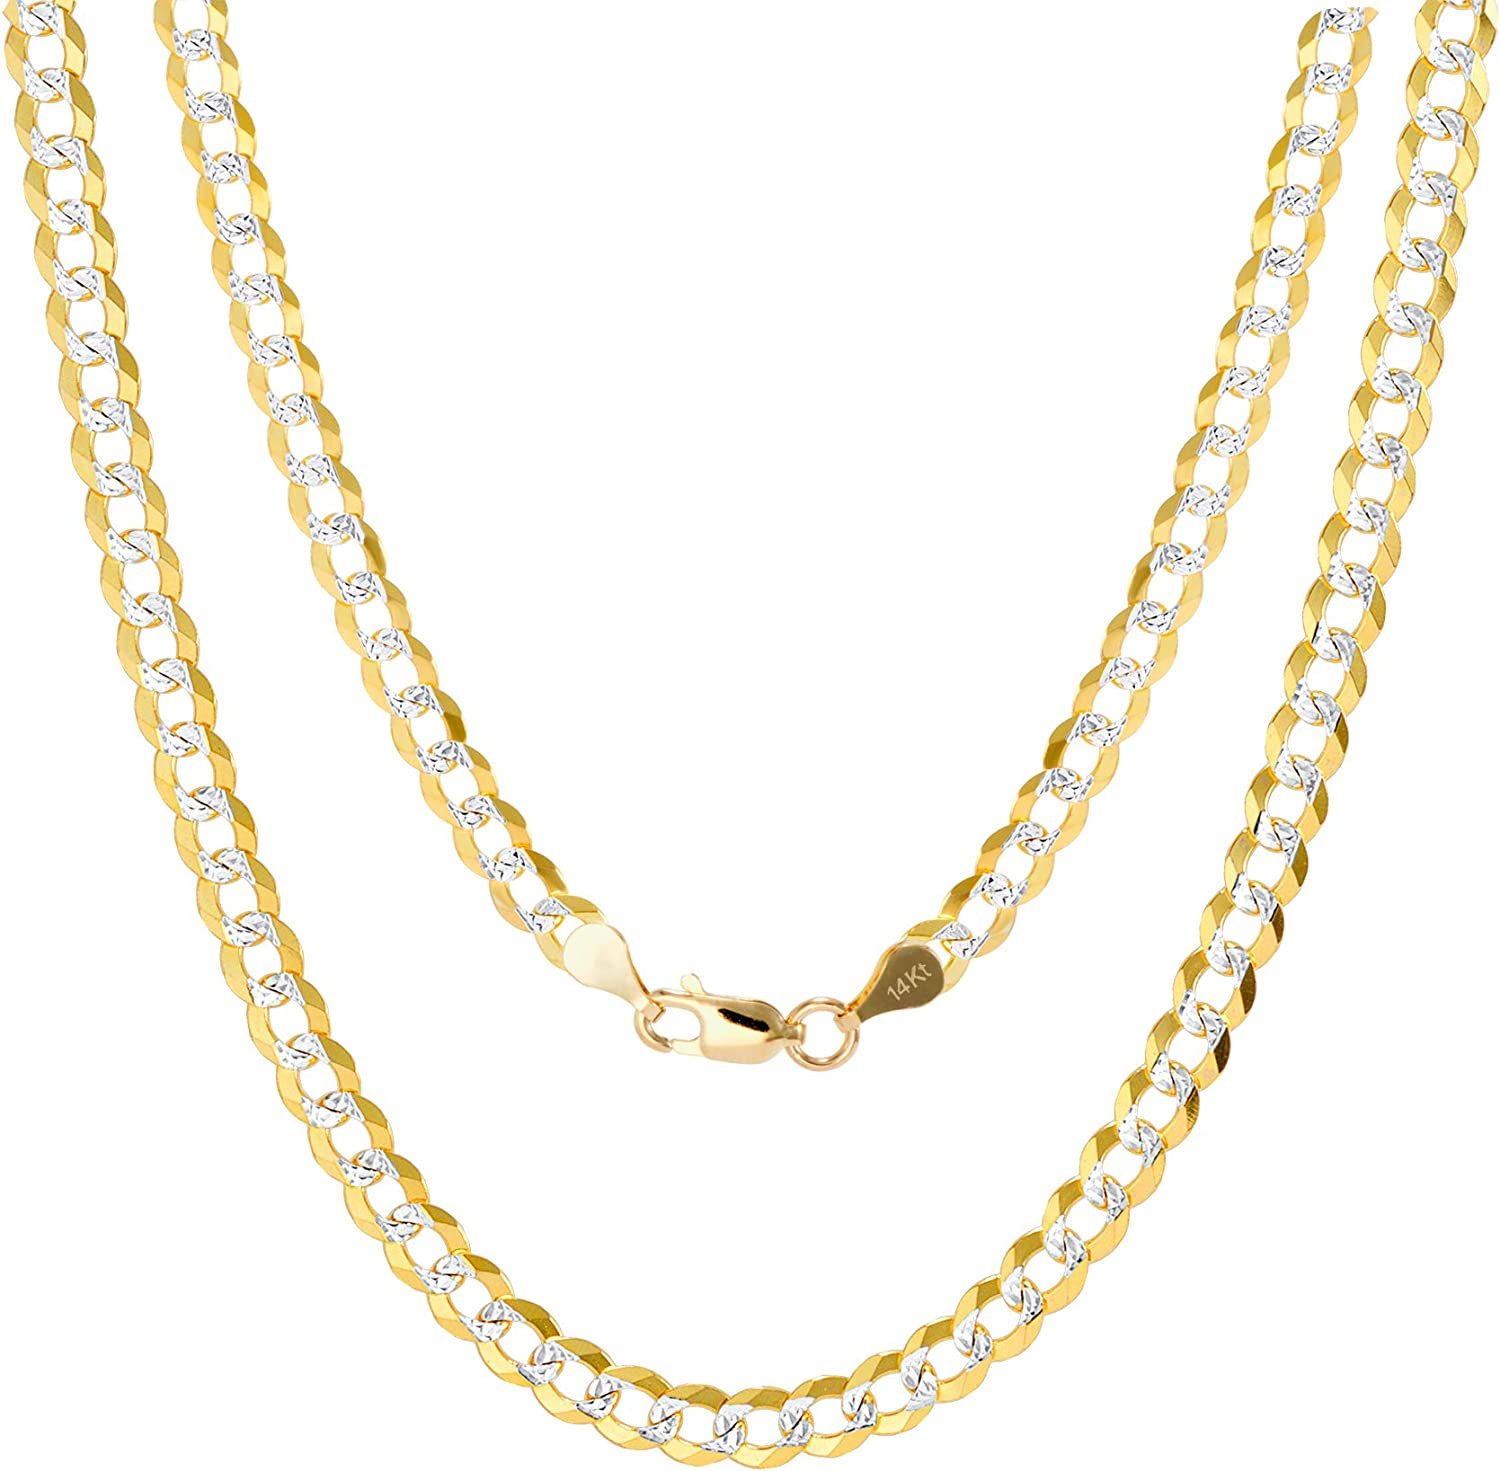 Nuragold 14k Yellow Gold Solid 5mm Cuban Chain Curb Link Diamond Cut Pave Two Tone Pendant Necklace, Mens Womens Lobster Lock 16